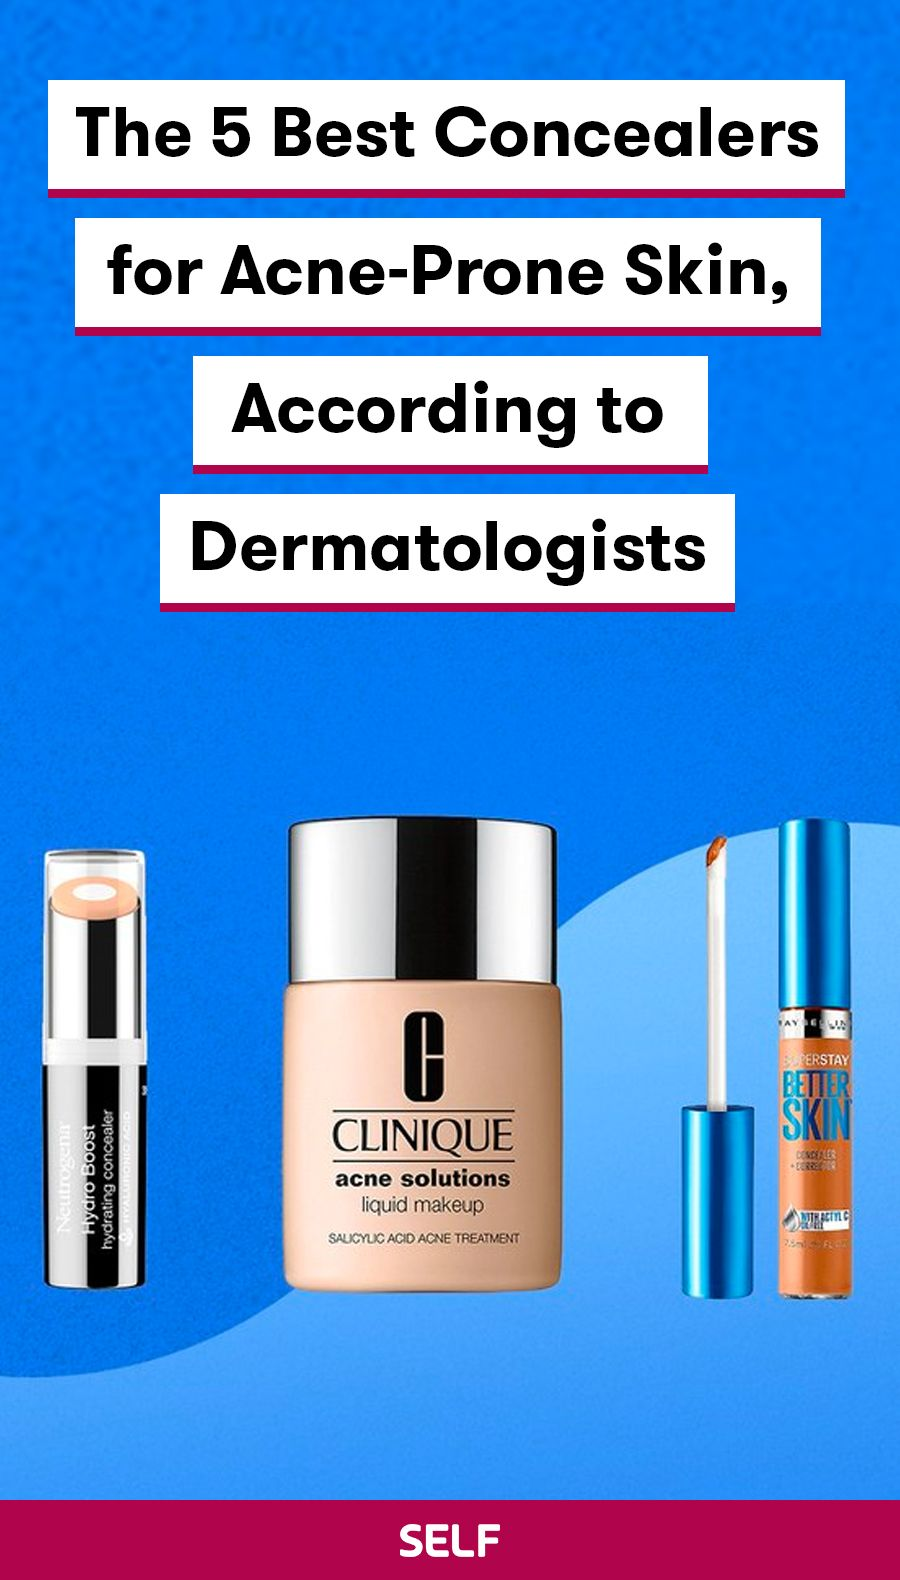 The 5 Best Concealers for AcneProne Skin, According to